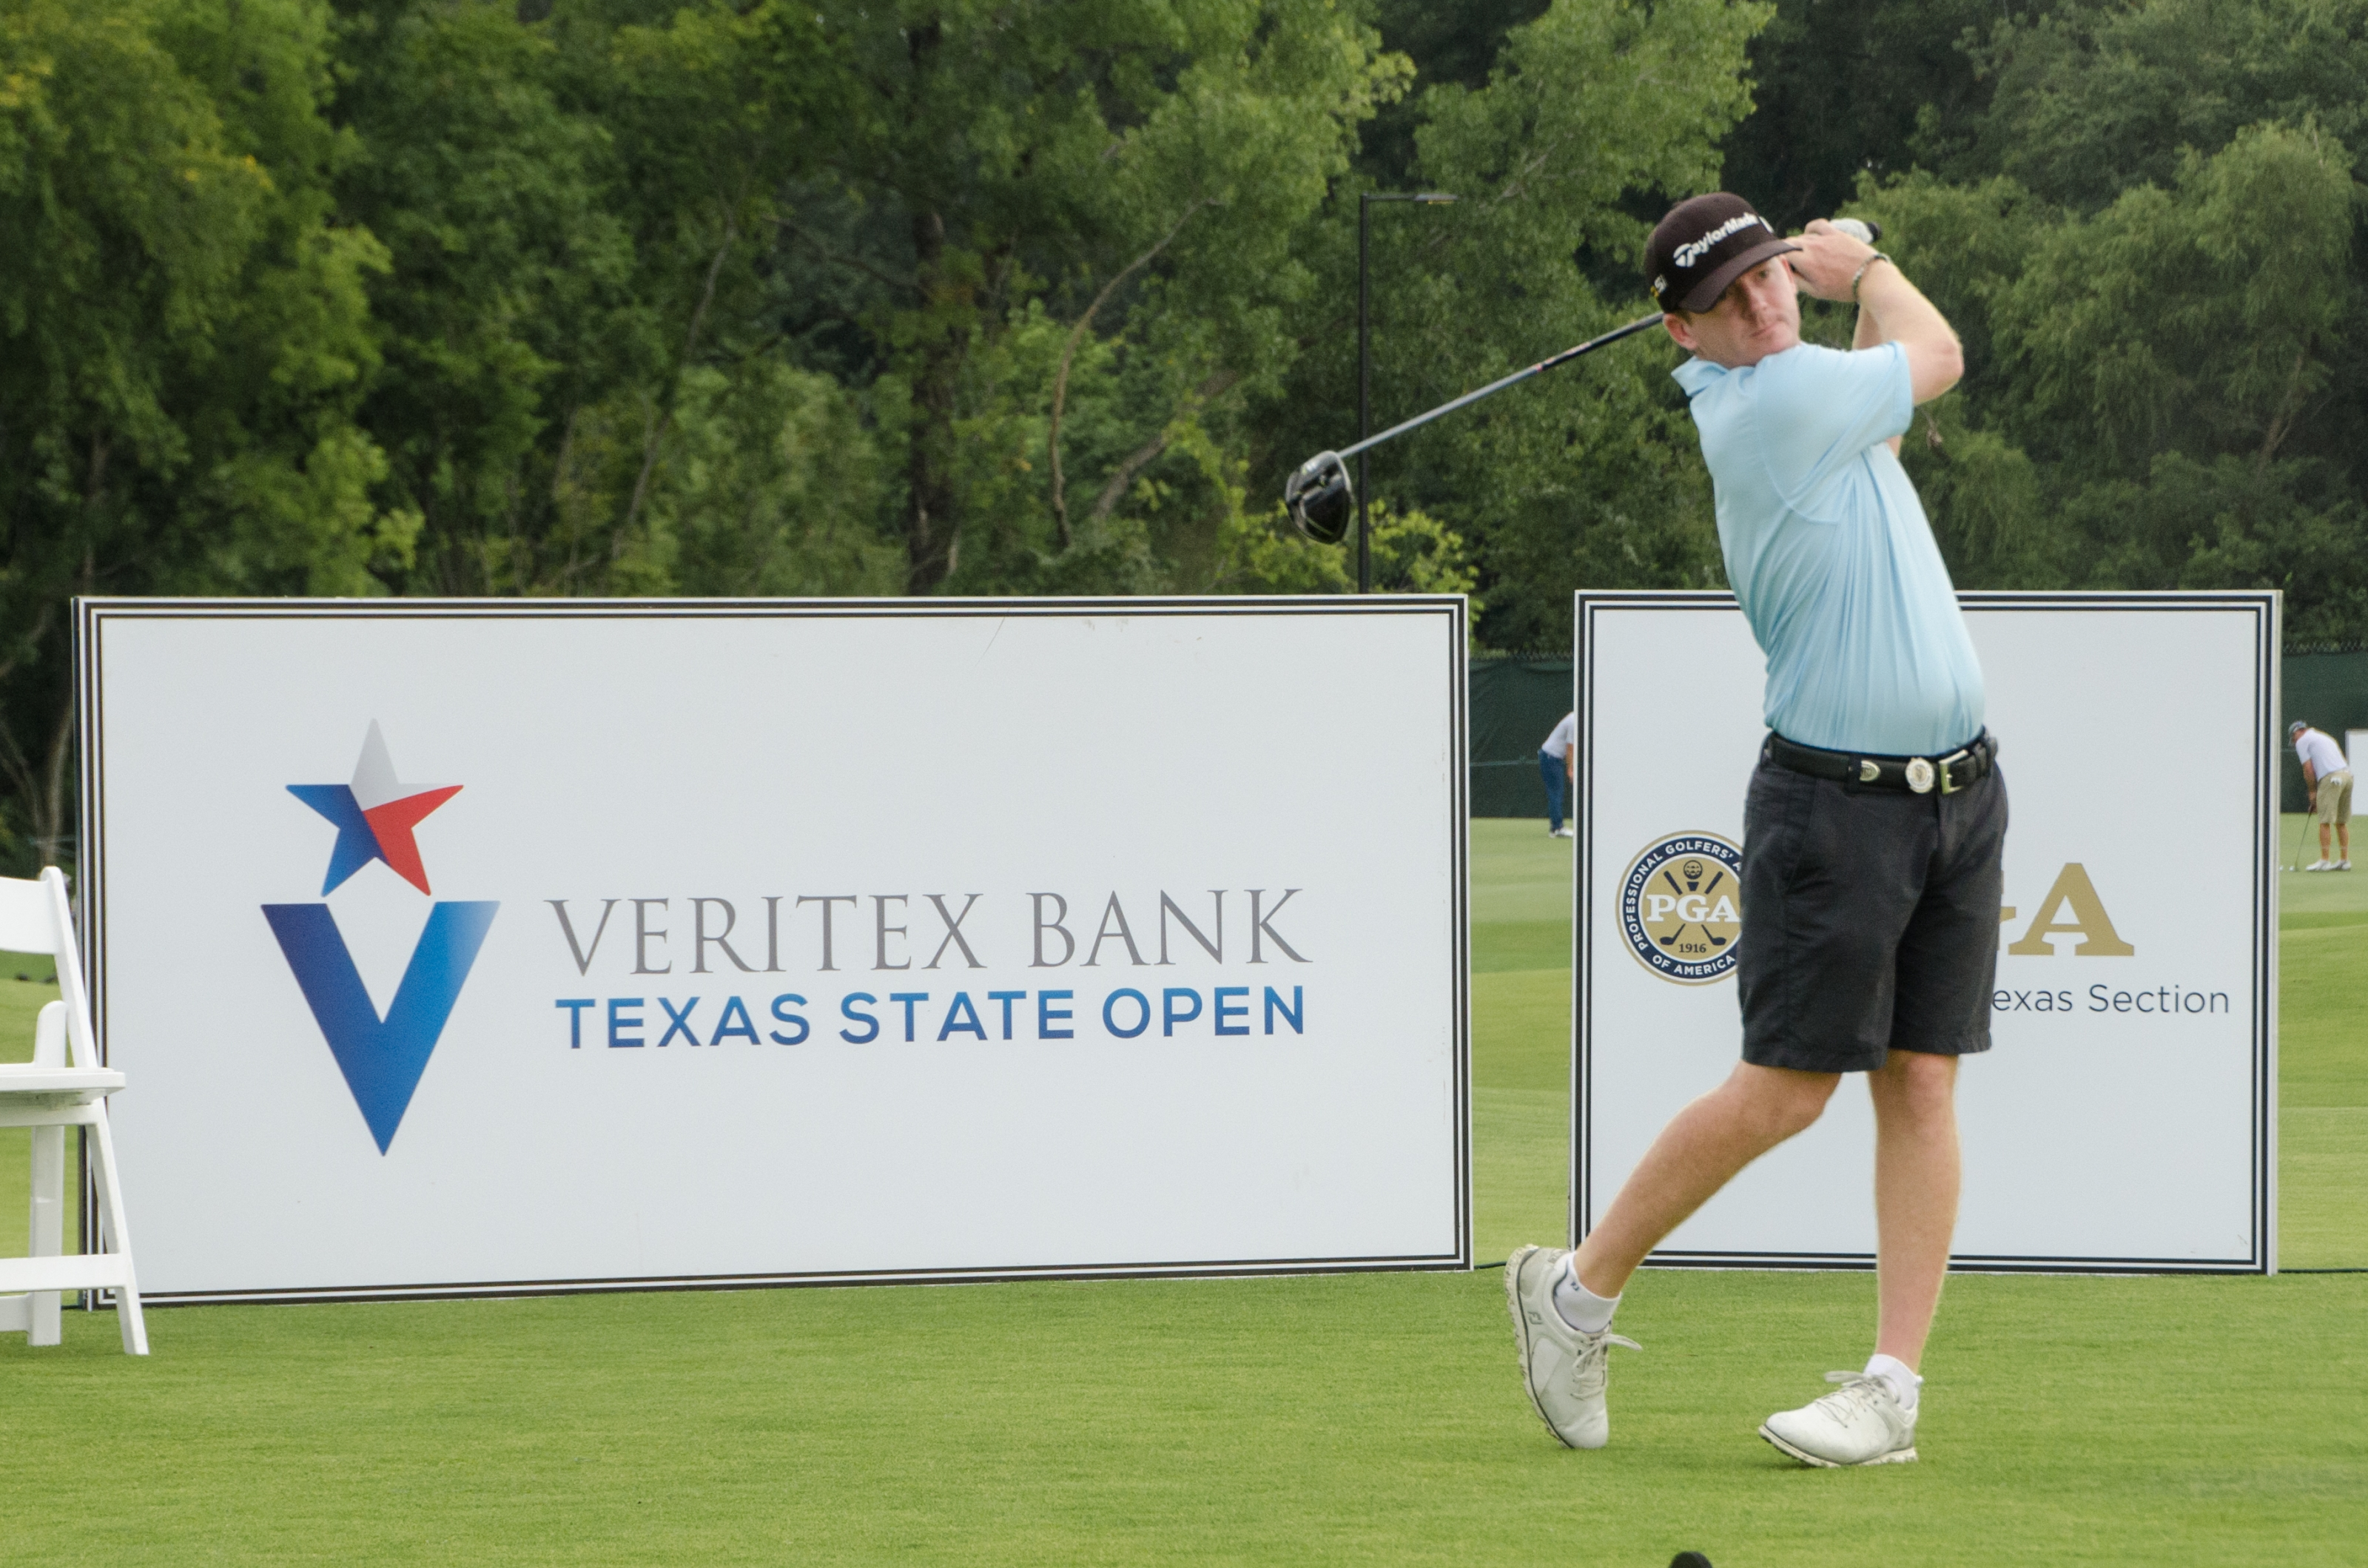 Jones Leads After Round One of the 47th Veritex Bank Texas State Open